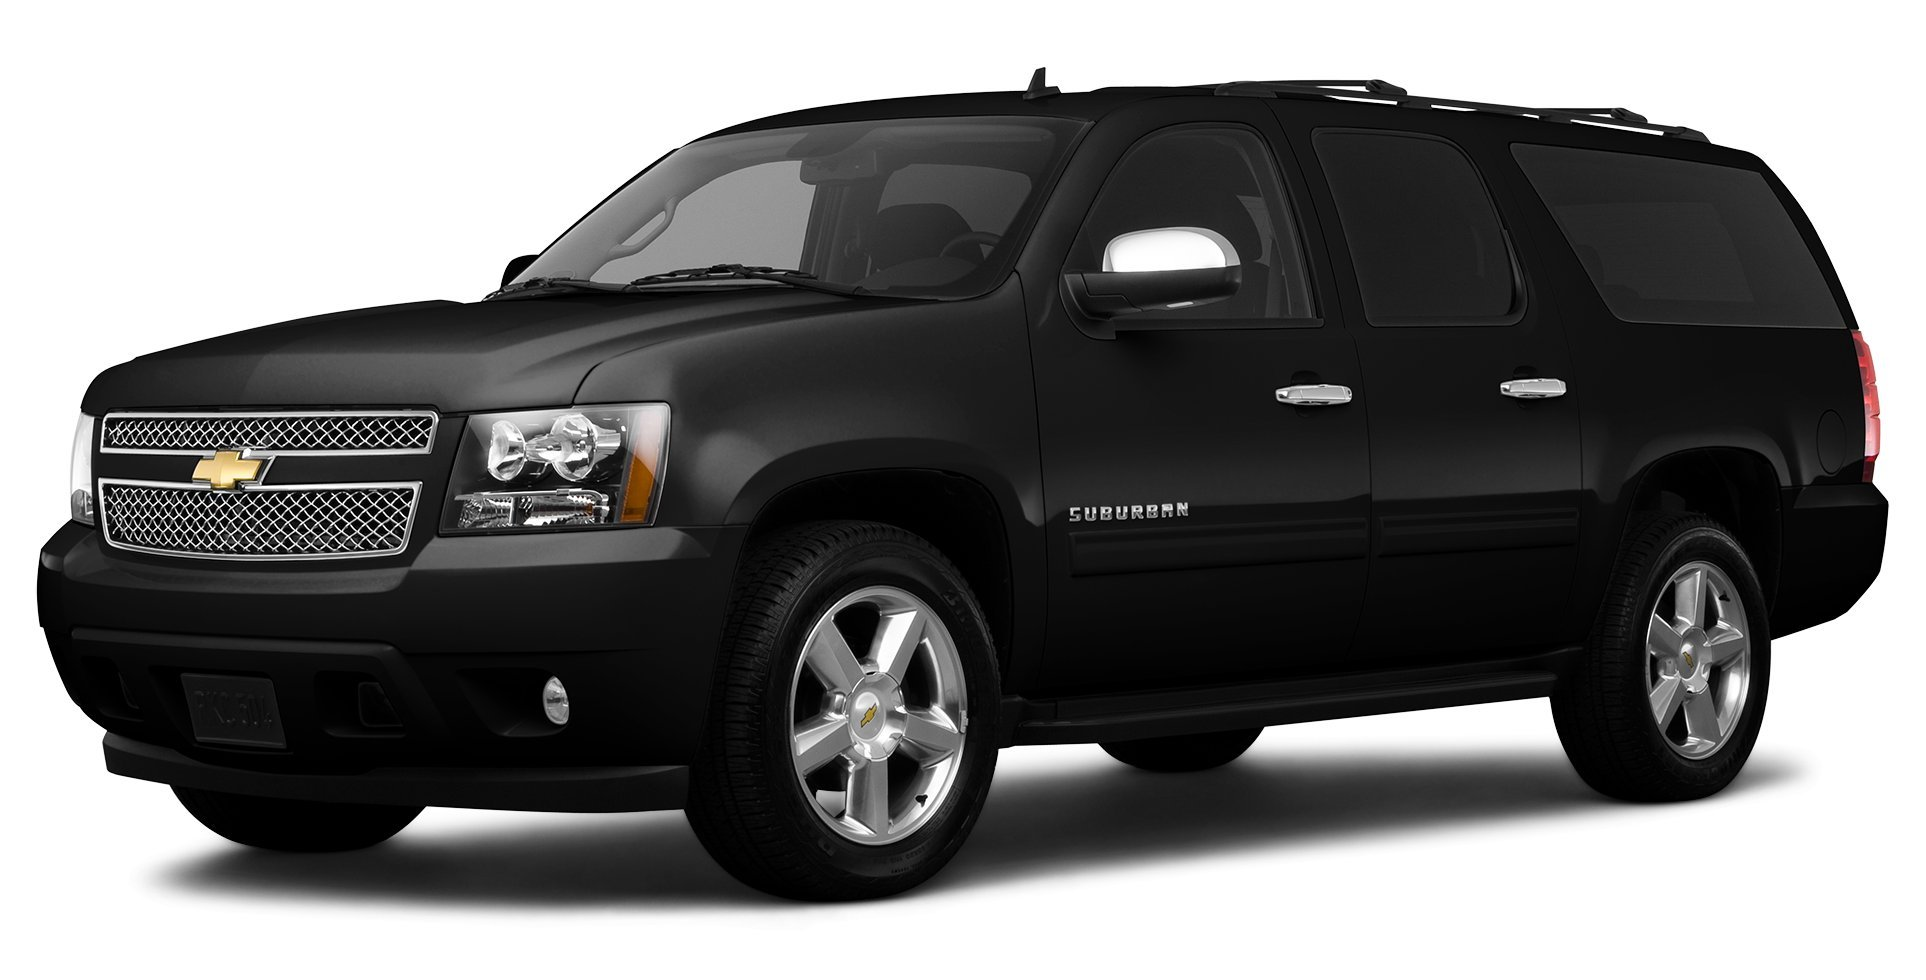 2011 dodge durango reviews images and specs. Black Bedroom Furniture Sets. Home Design Ideas